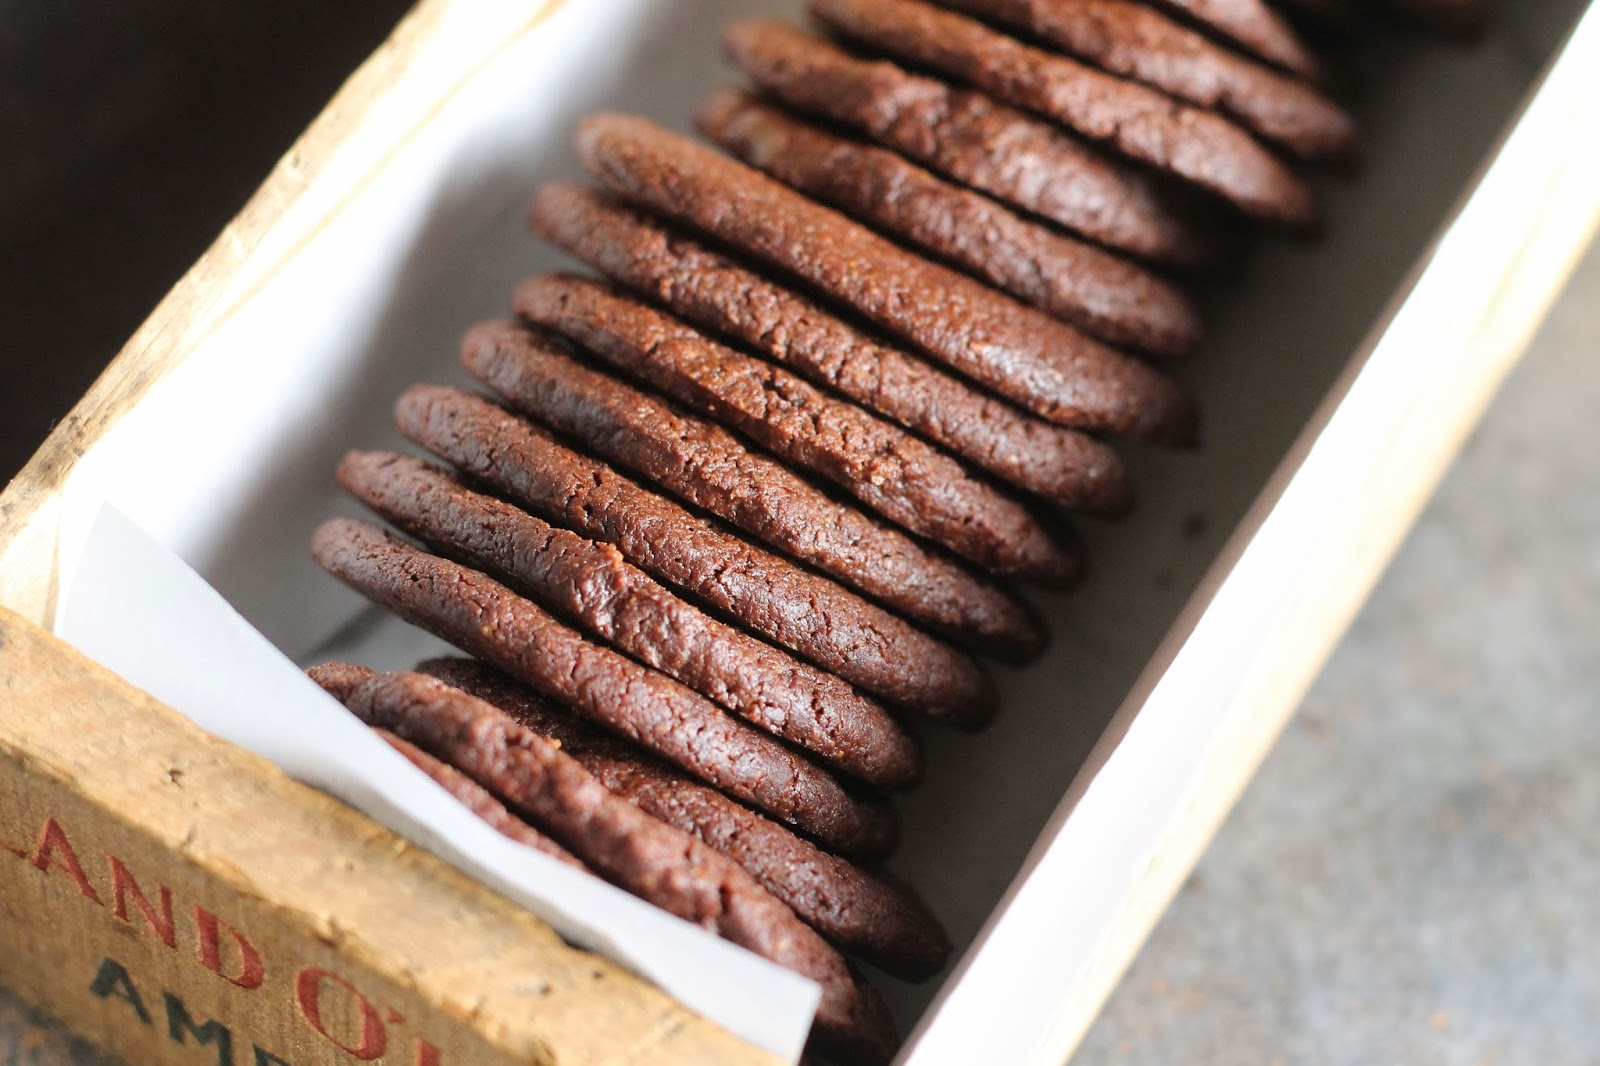 Where Your Treasure Is: Homemade Whole Wheat Chocolate Wafers